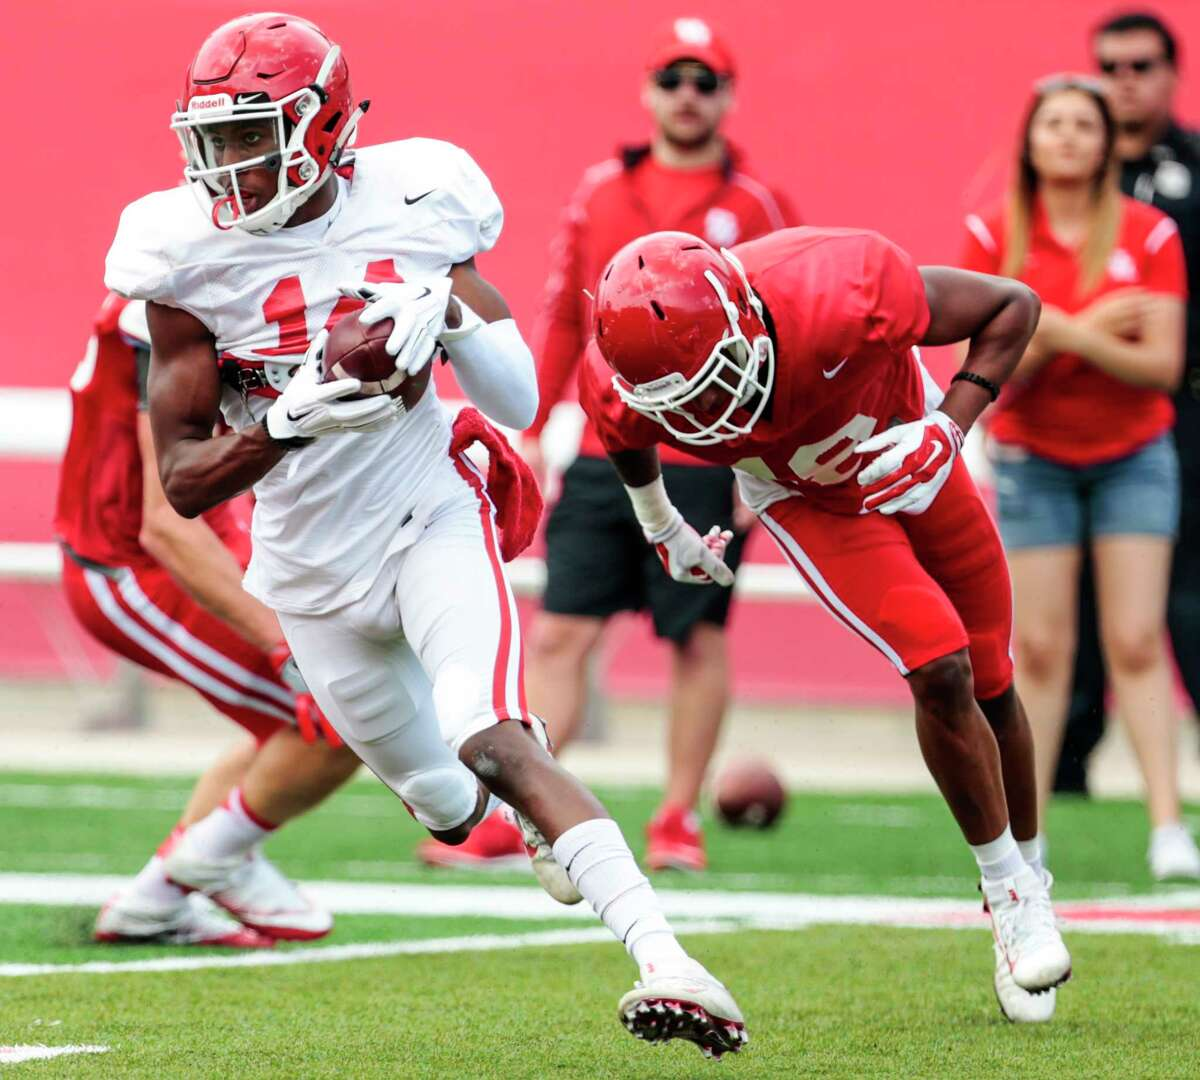 HOUSTON Successful position change Isaiah Johnson moved from receiver to cornerback in the offseason, and it looks like he's ready to contribute on defense. The junior had an interception in the spring game.